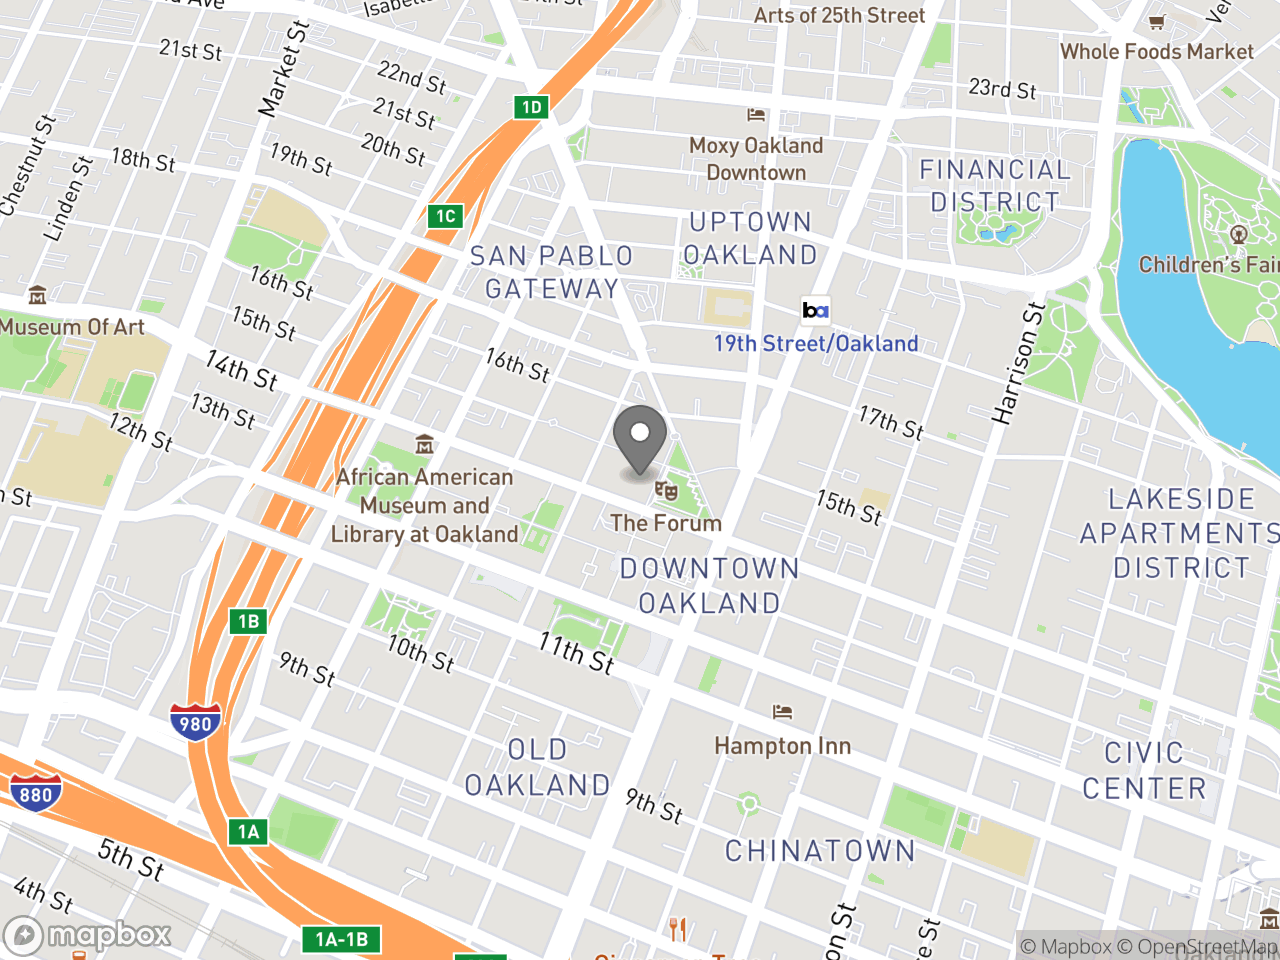 Map image for Mayor's Commission on Aging Meeting - SPECIAL, located at 1 Frank H Ogawa Plaza in Oakland, CA 94612